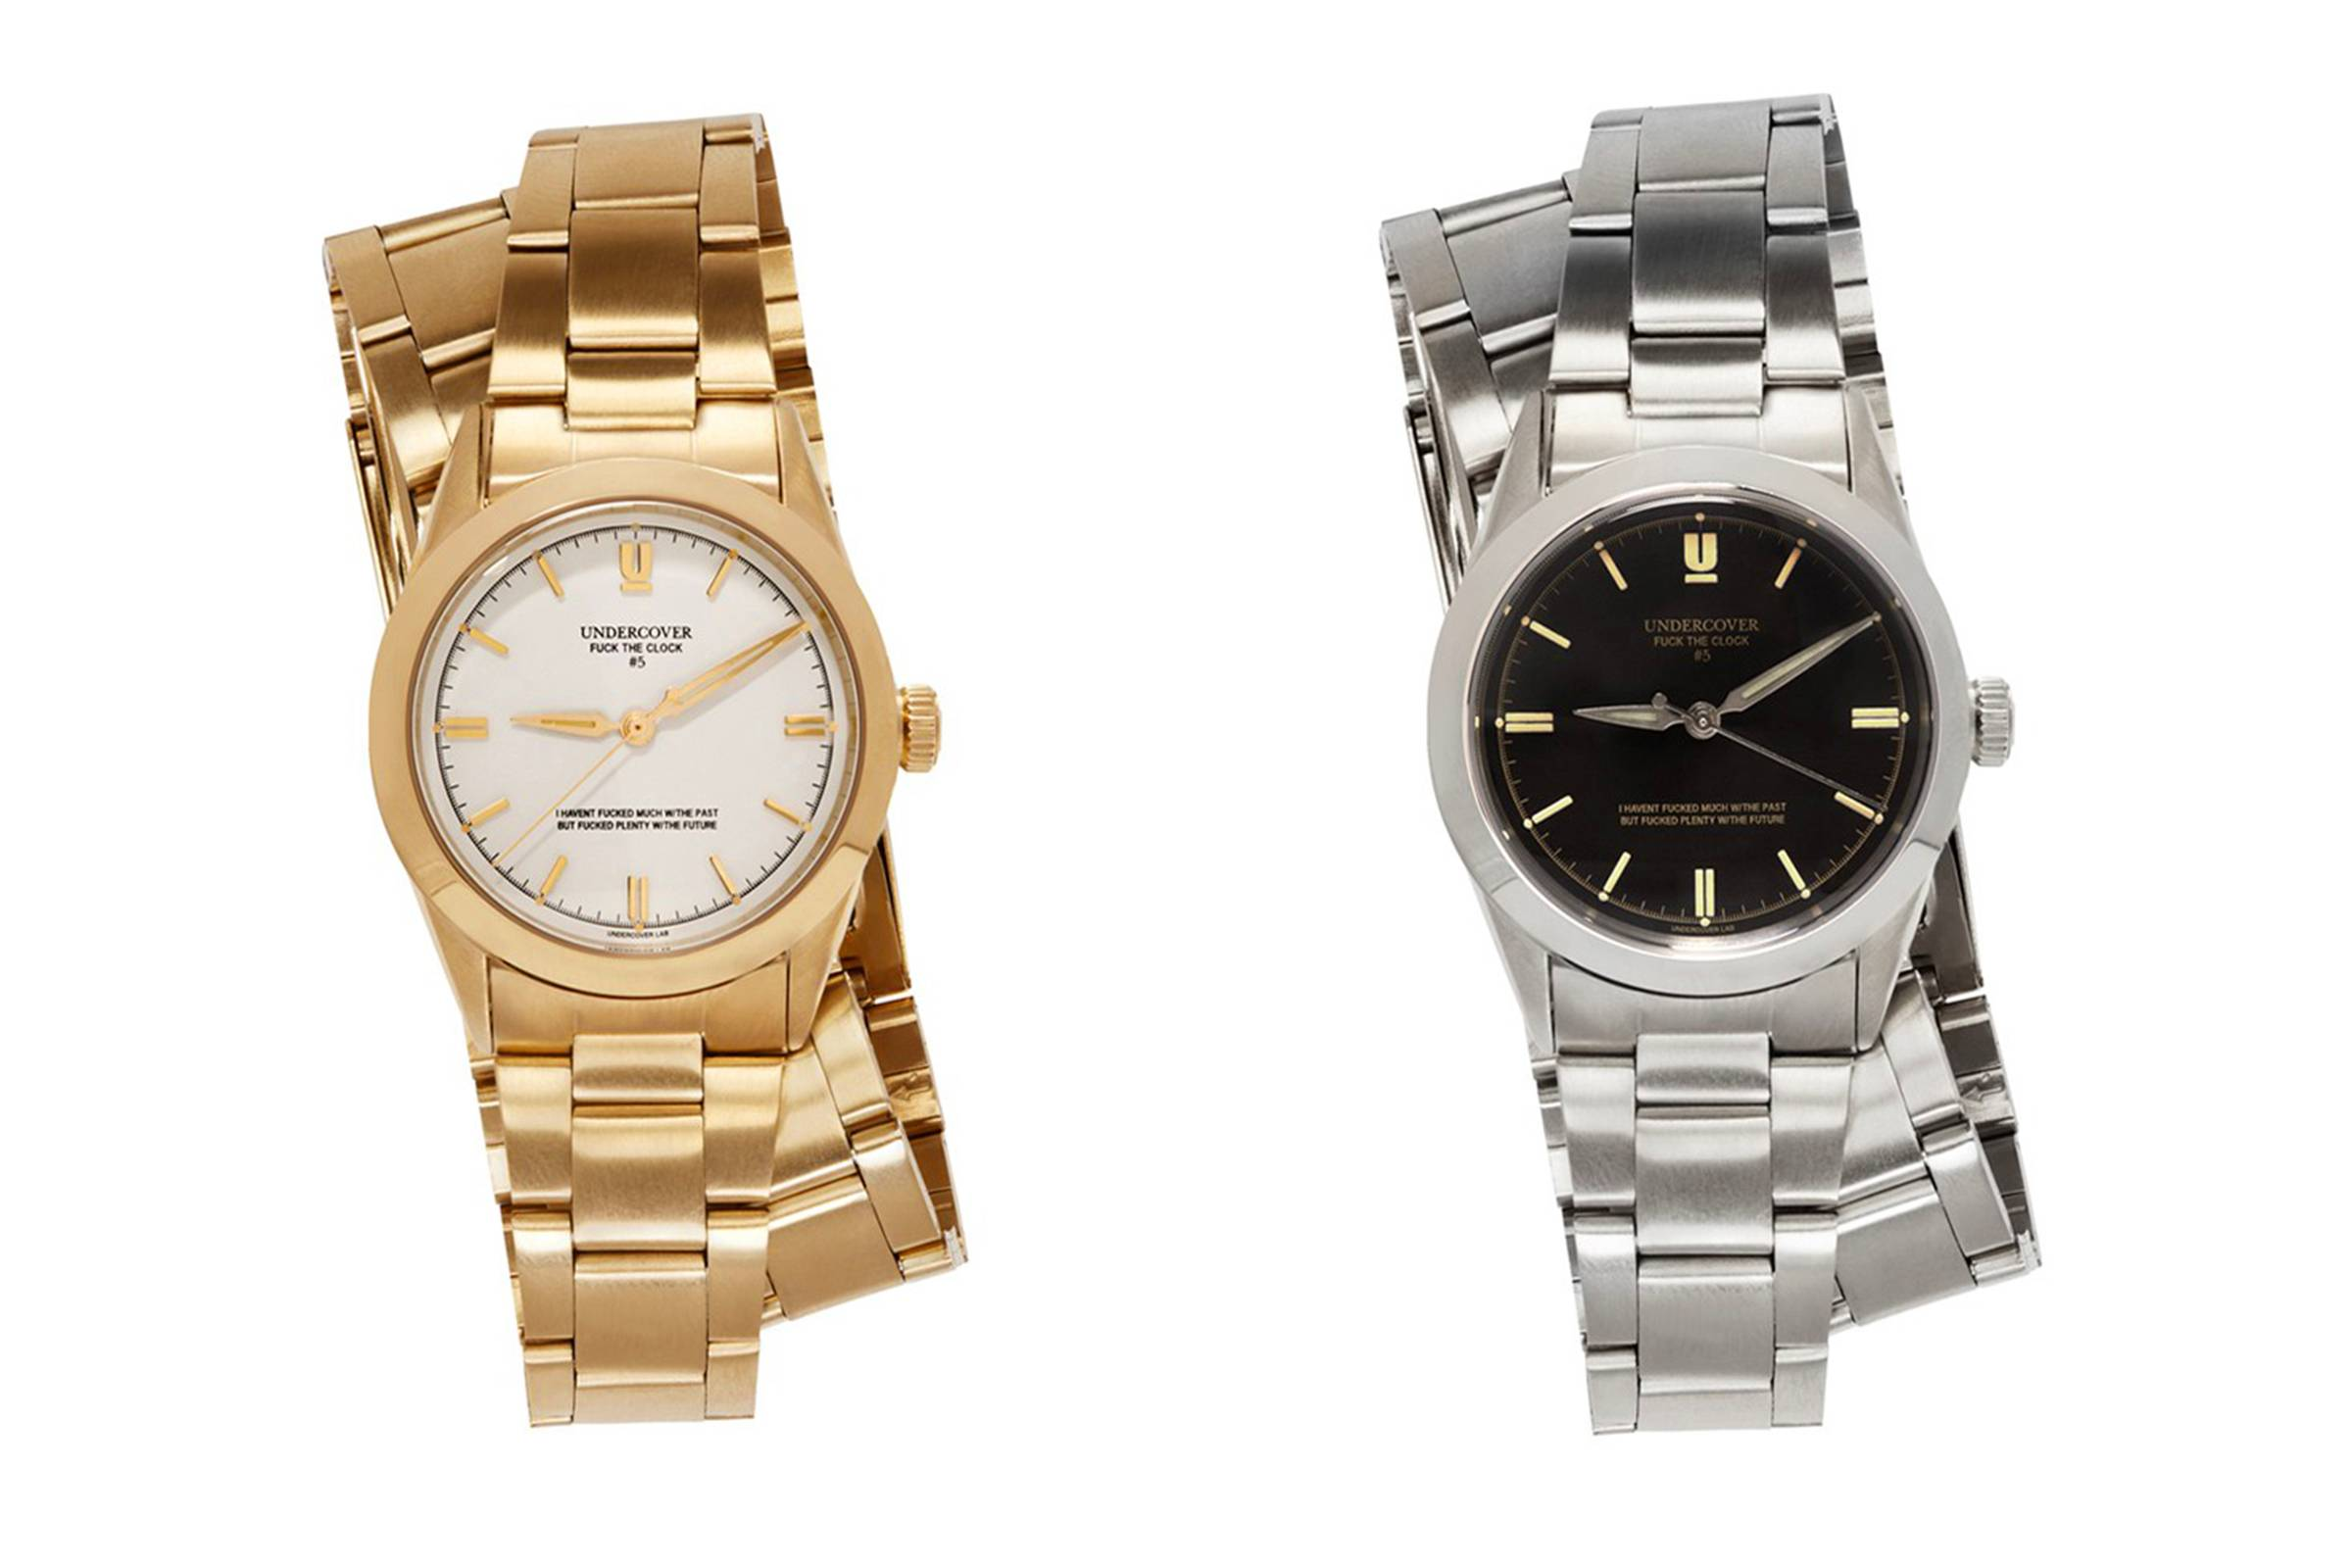 Undercover Double Wrap Watch